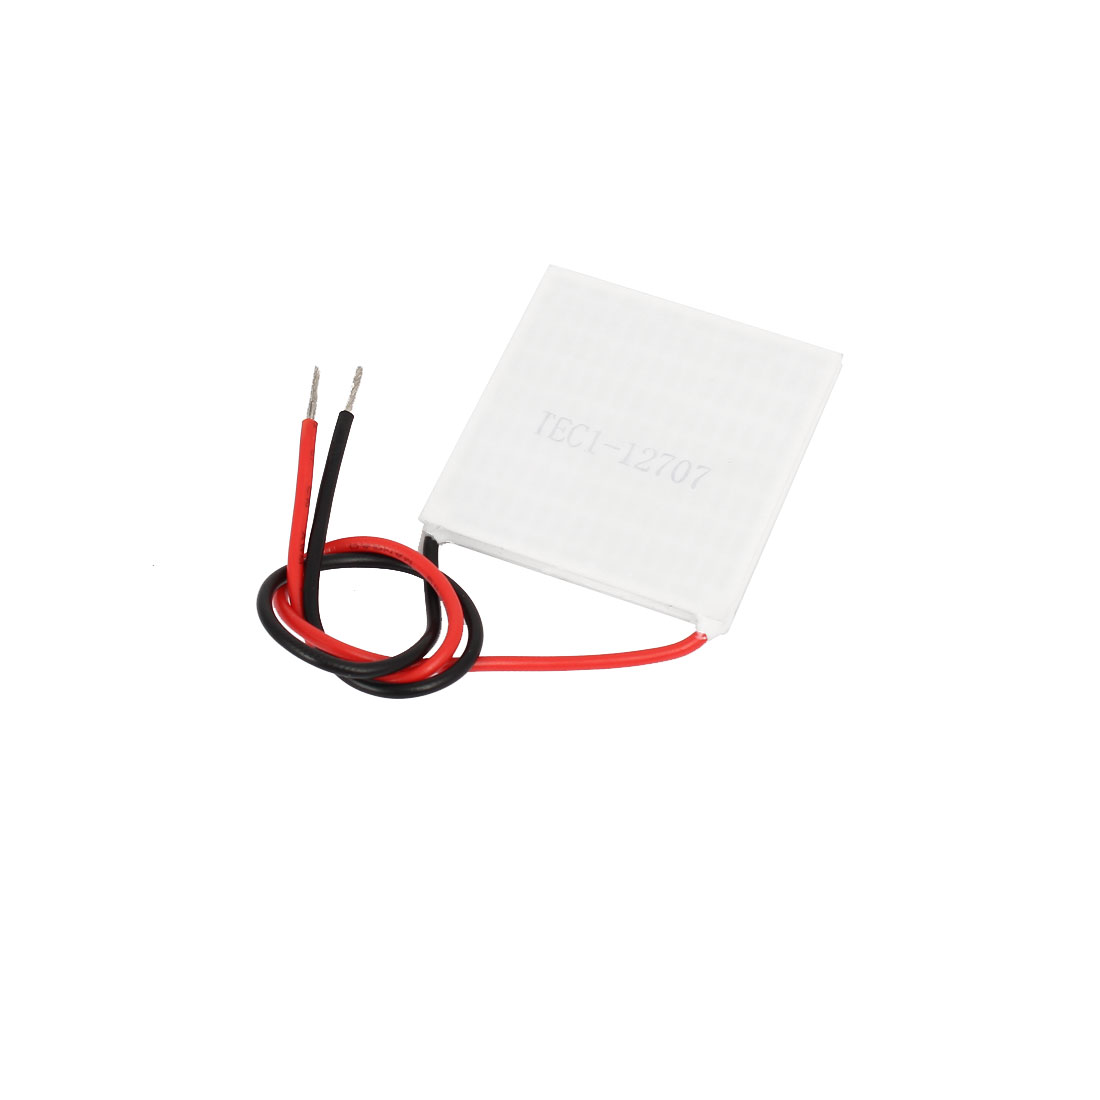 TEC1-12707 7A 12V 60W 40x40x3.5mm Thermoelectric Cooler Peltier Plate Module